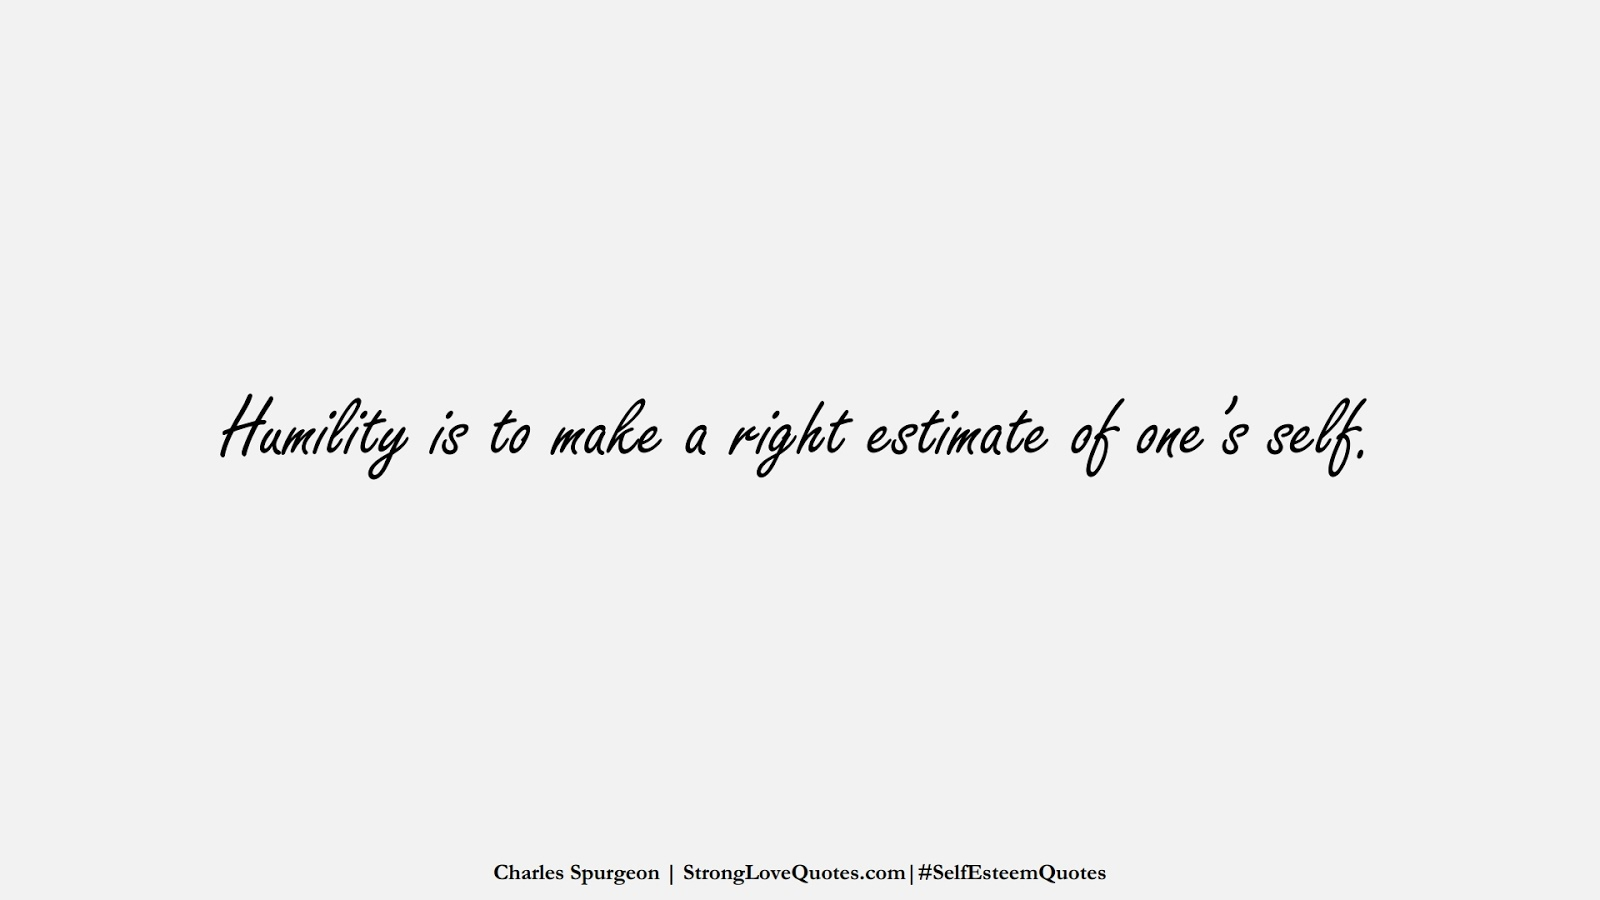 Humility is to make a right estimate of one's self. (Charles Spurgeon);  #SelfEsteemQuotes